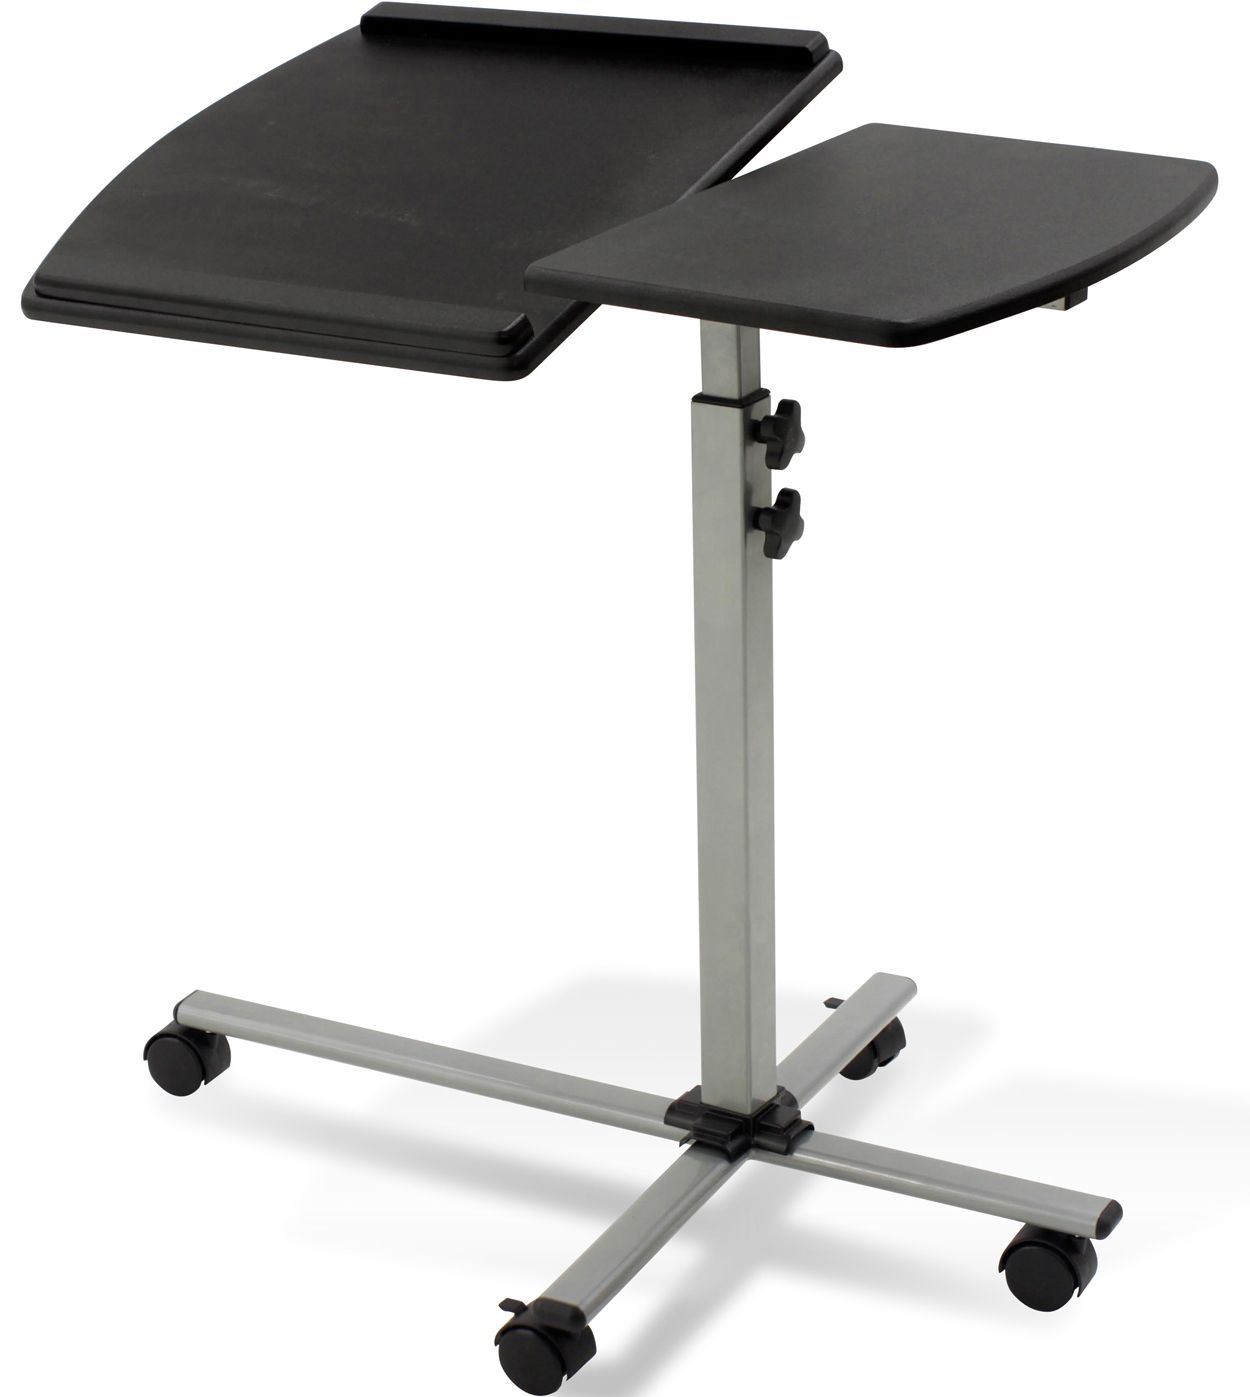 This Rolling Laptop Desk Gives You A Simple Way To Work On Paperwork Homework Or Even Adjustable Laptop Table Adjustable Standing Desk Adjustable Height Table